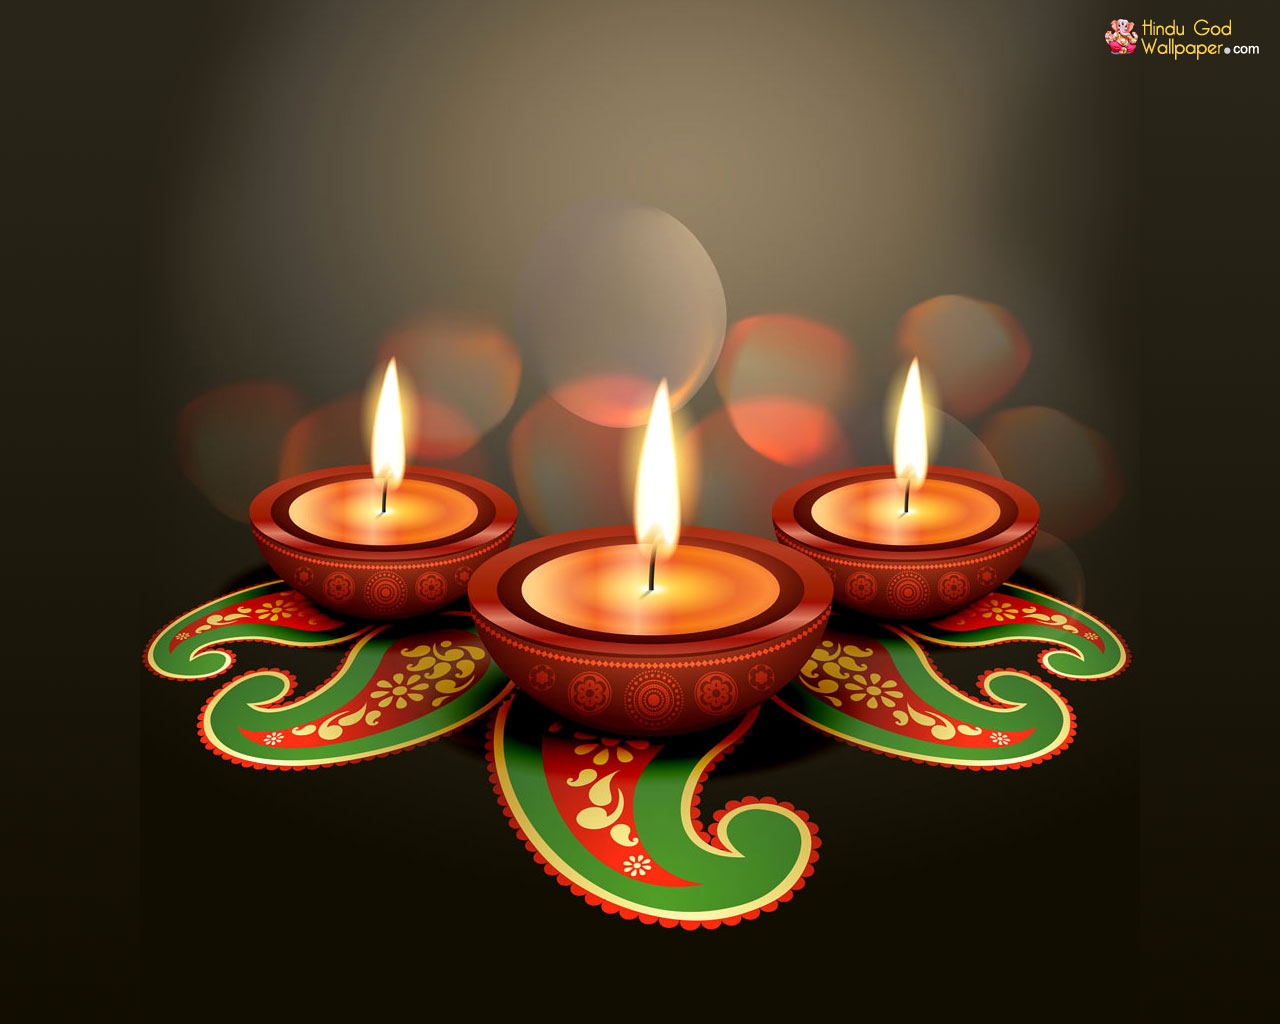 Diwali Lamp Designs Happy Deepawali Lights Diyas Decoration Ideas 2015 Images